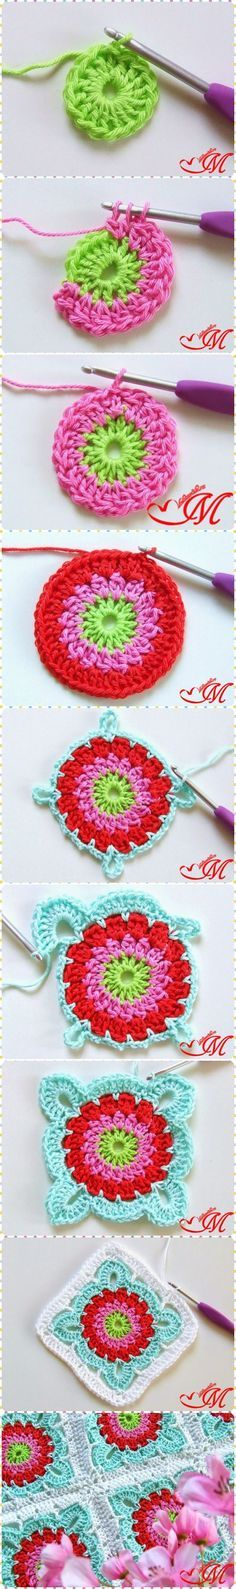 African Crochet Flower Pattern For Projects | The WHOot